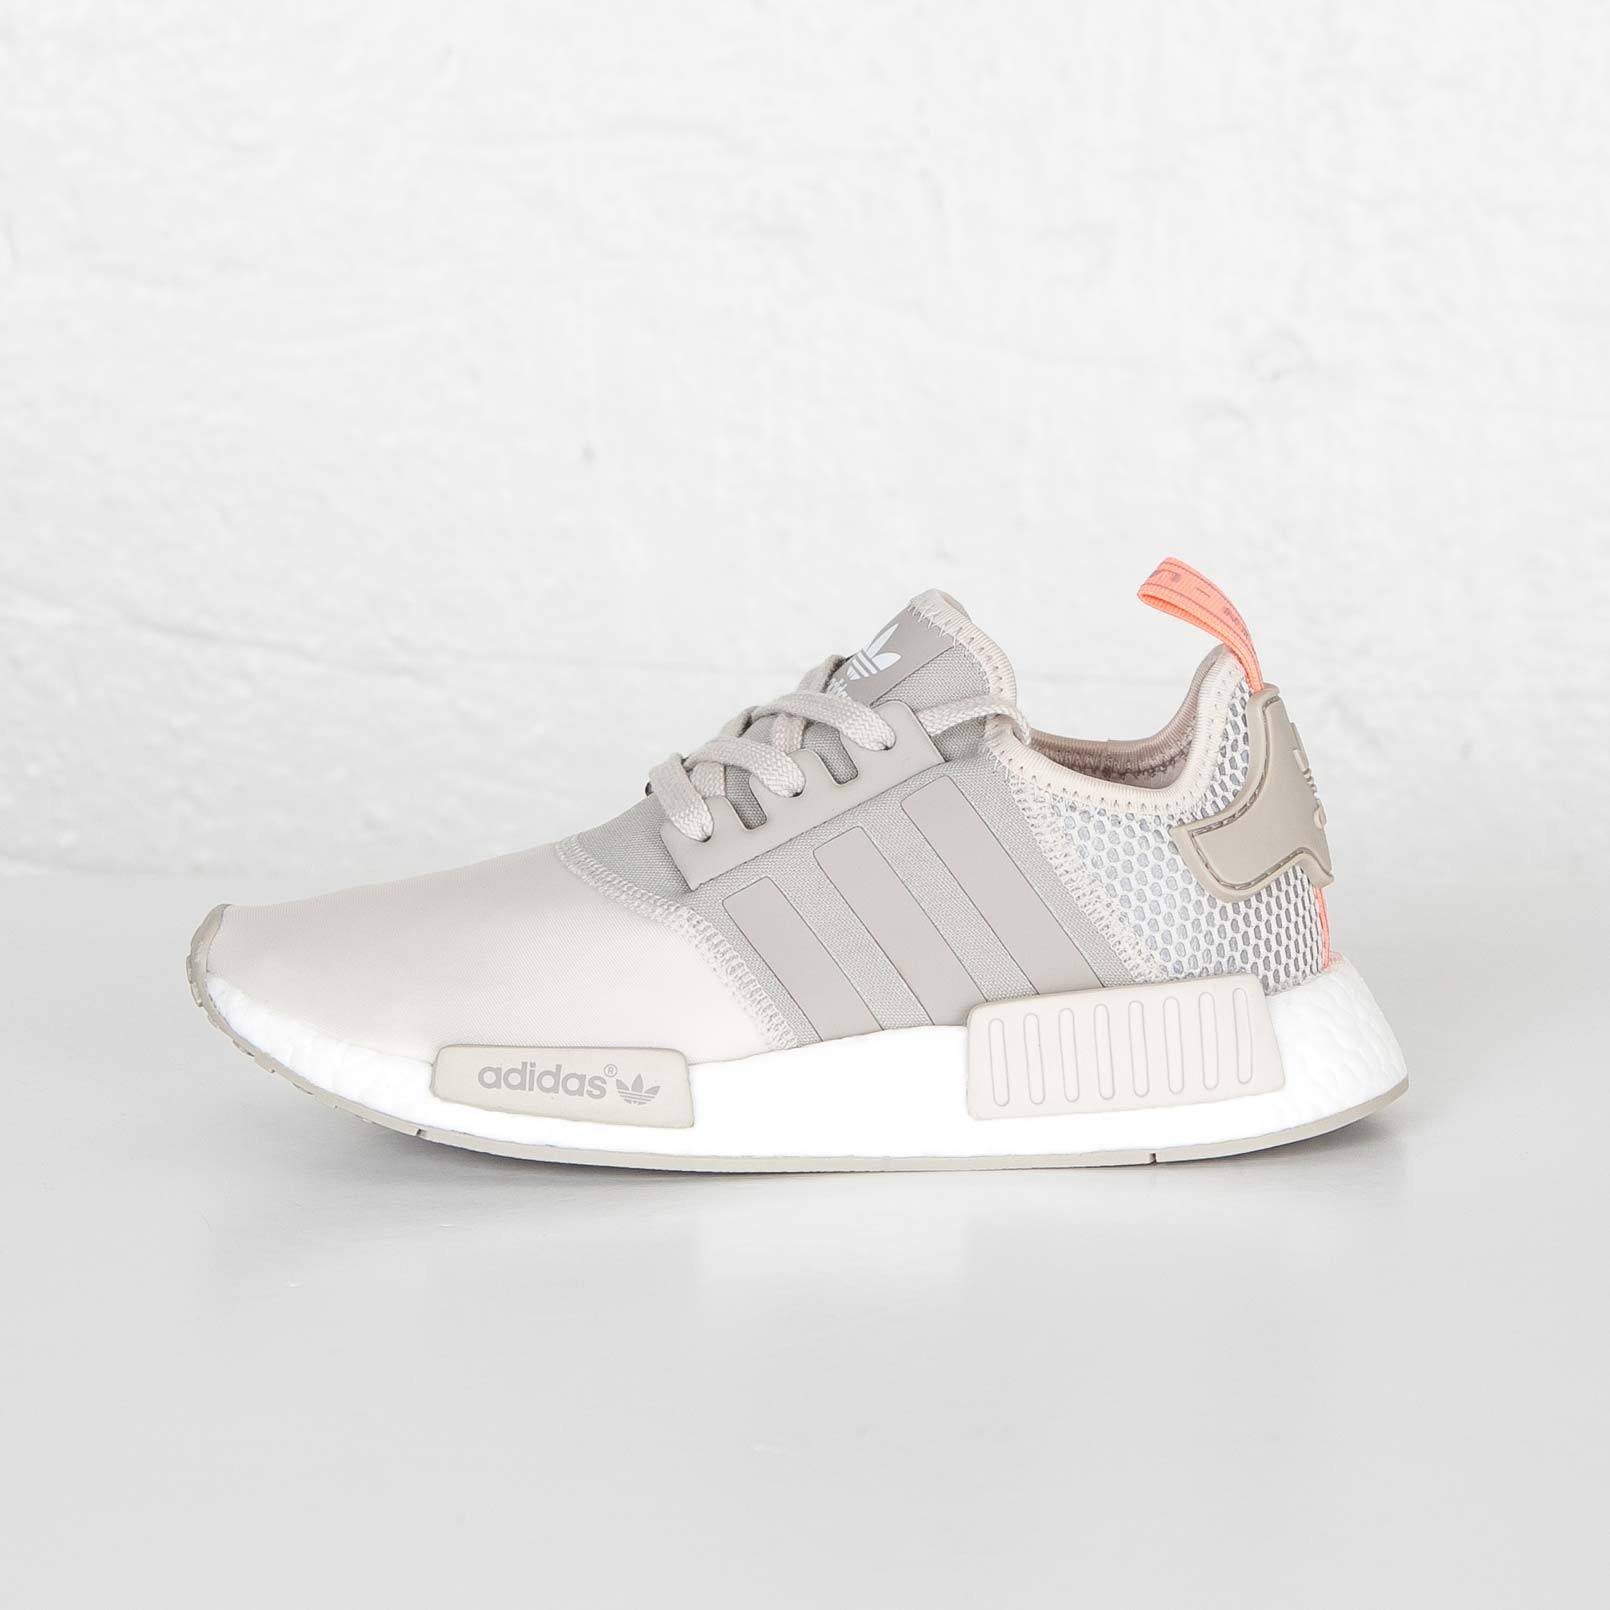 sports shoes fb148 e7fda adidas NMD_R1 W - S75233 - Sneakersnstuff | sneakers ...